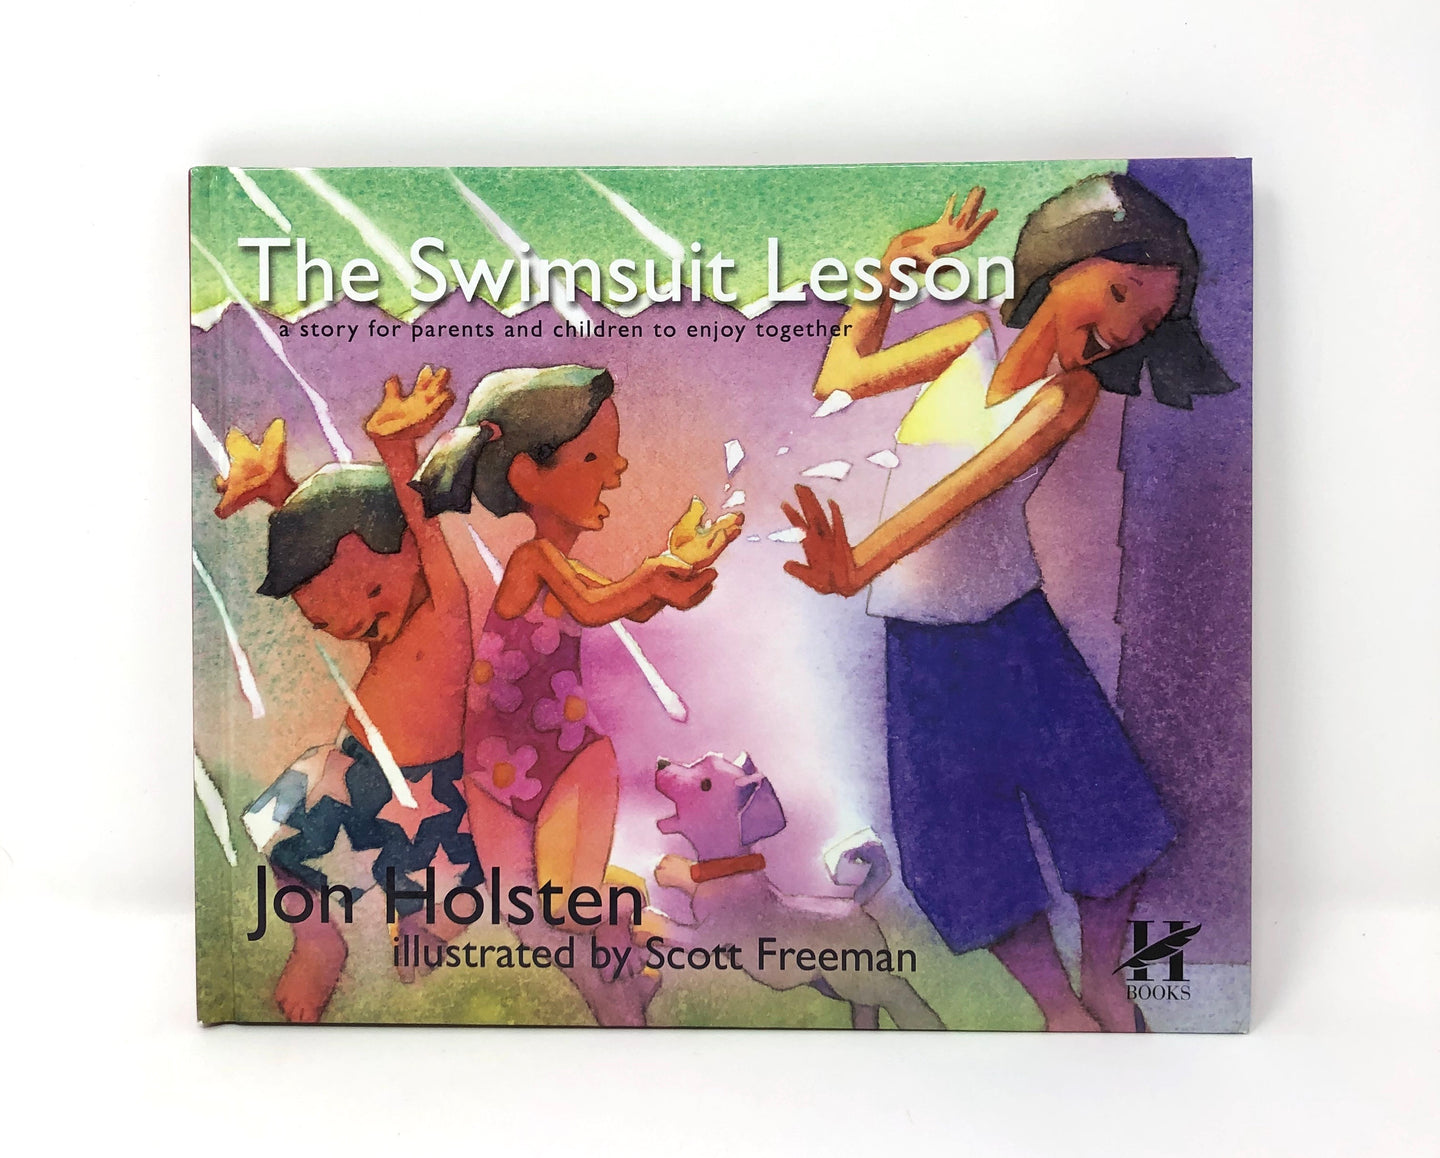 The Swimsuit Lesson: a story for parents and children to enjoy together-John Holsten (Used-Like New) - Little Green Schoolhouse Books